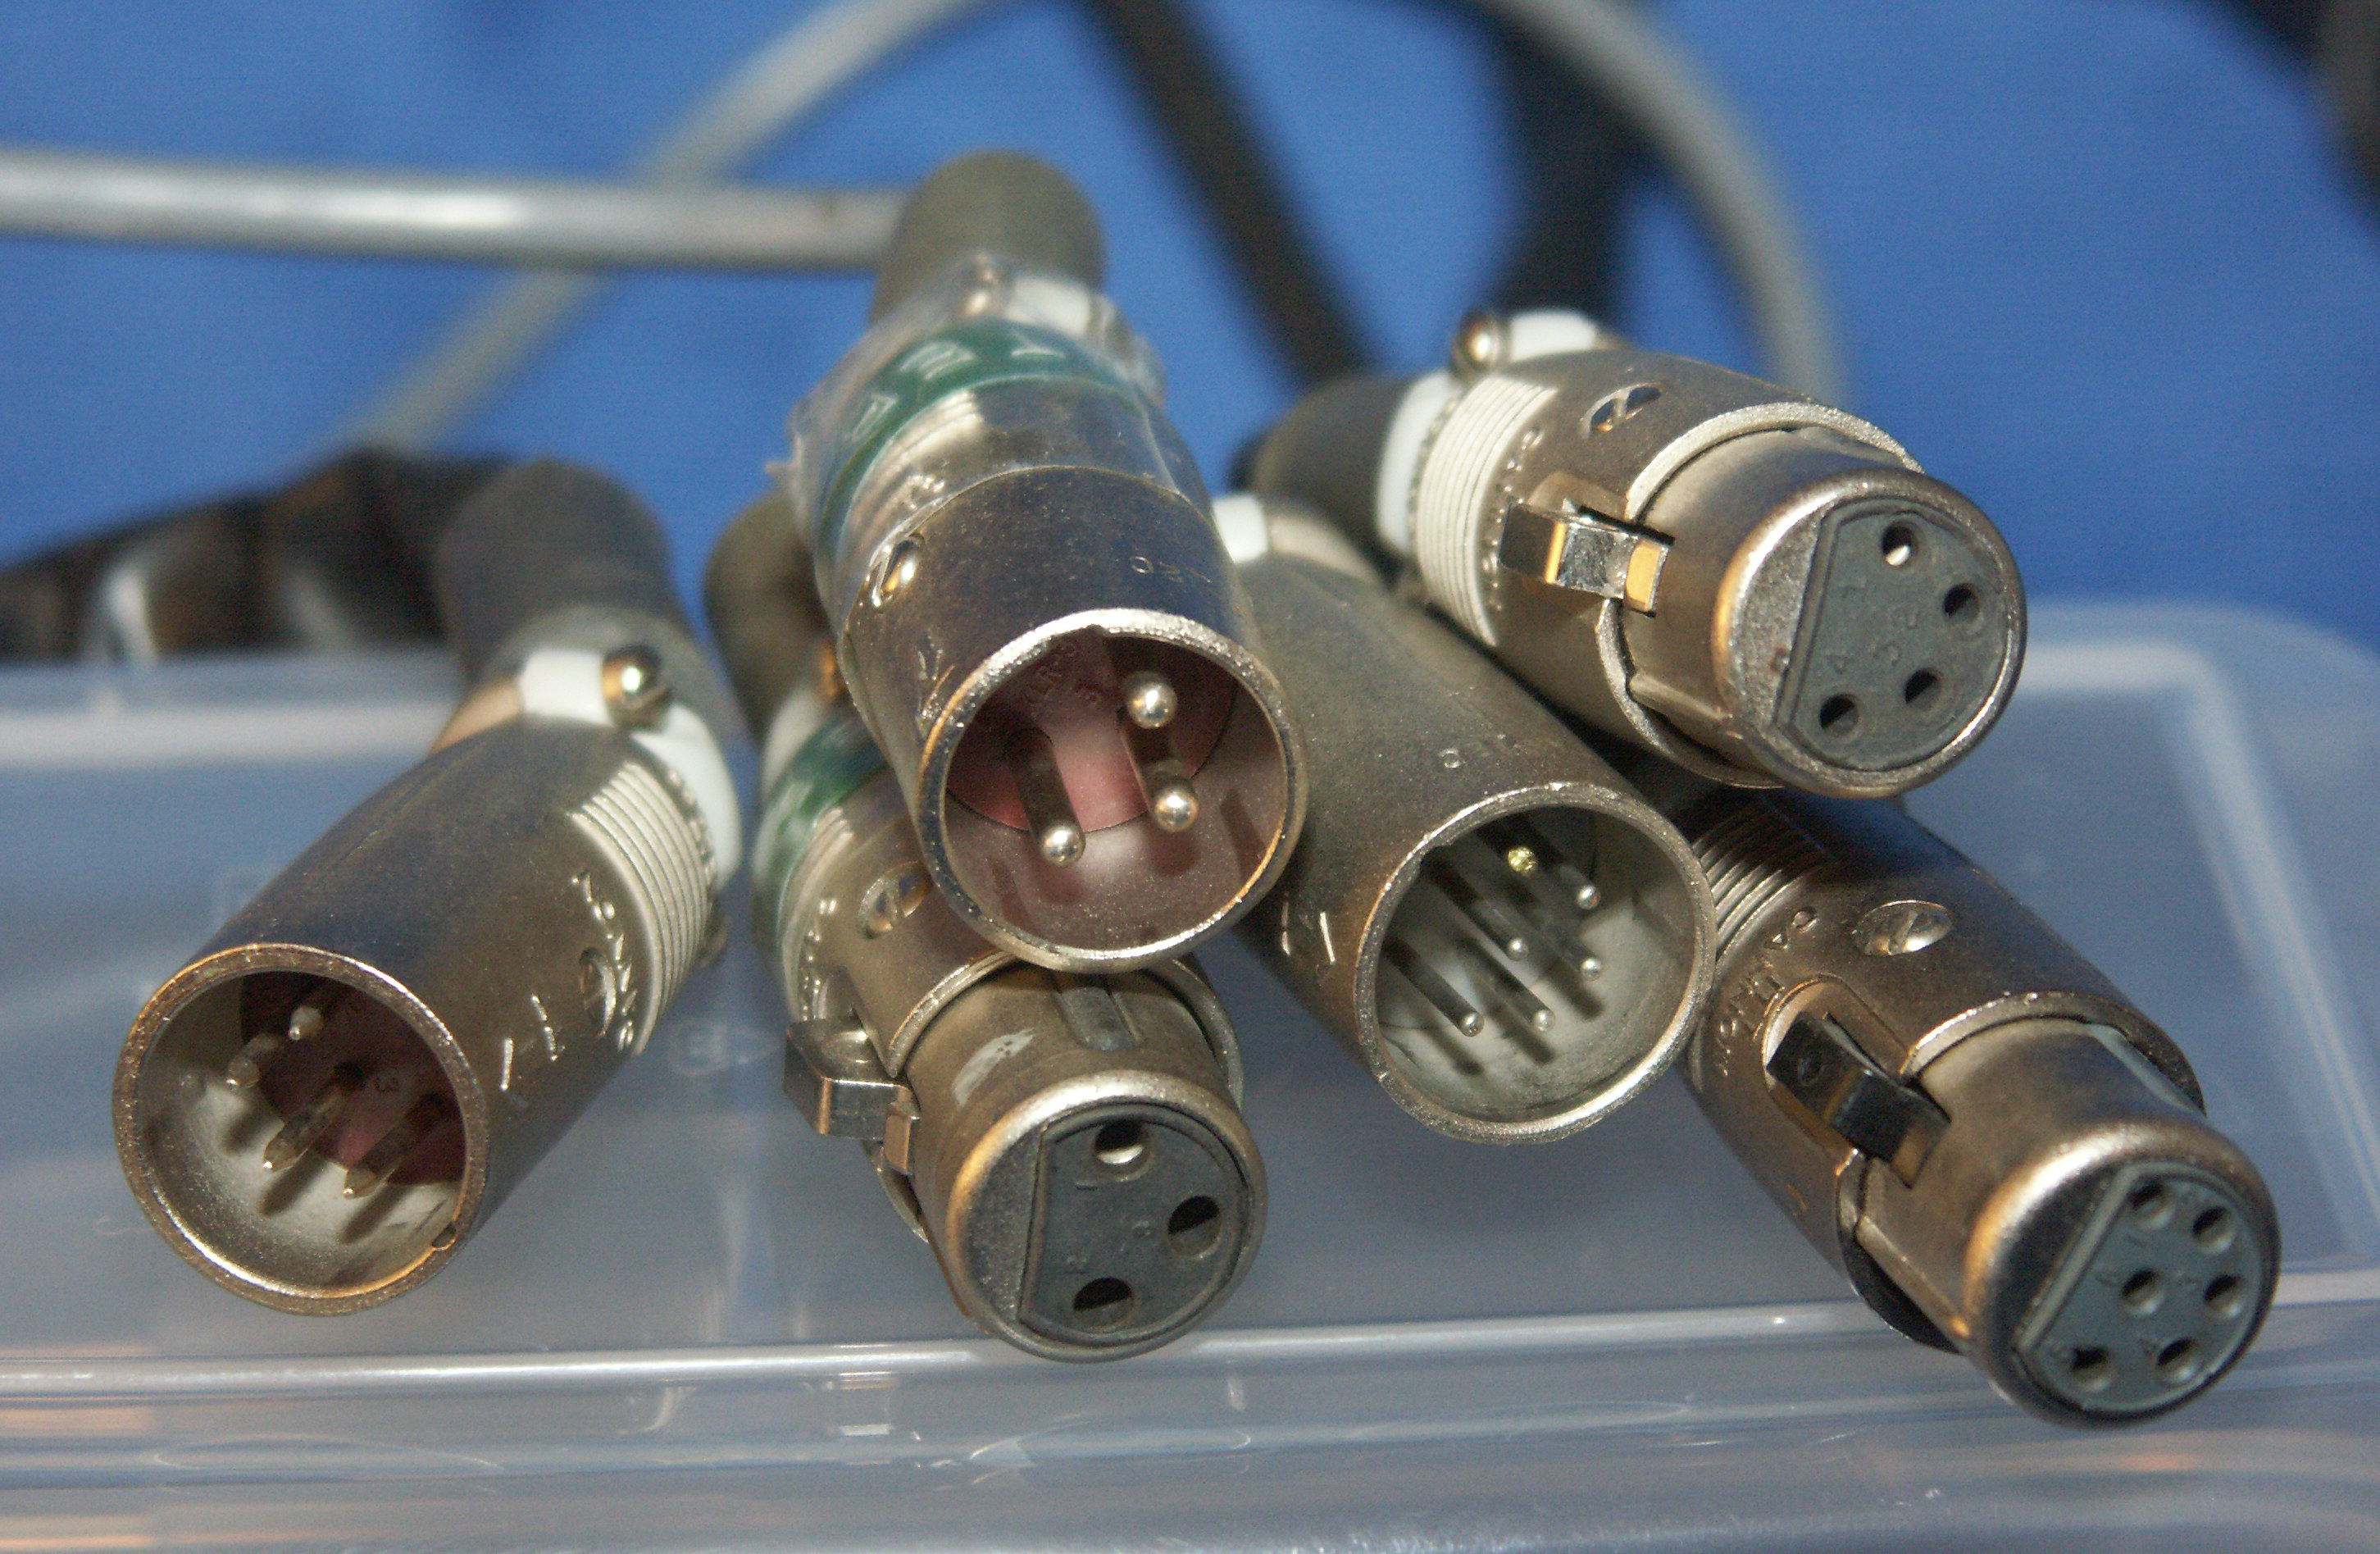 Group_of_XLR_connectors_PICT6918.jpg